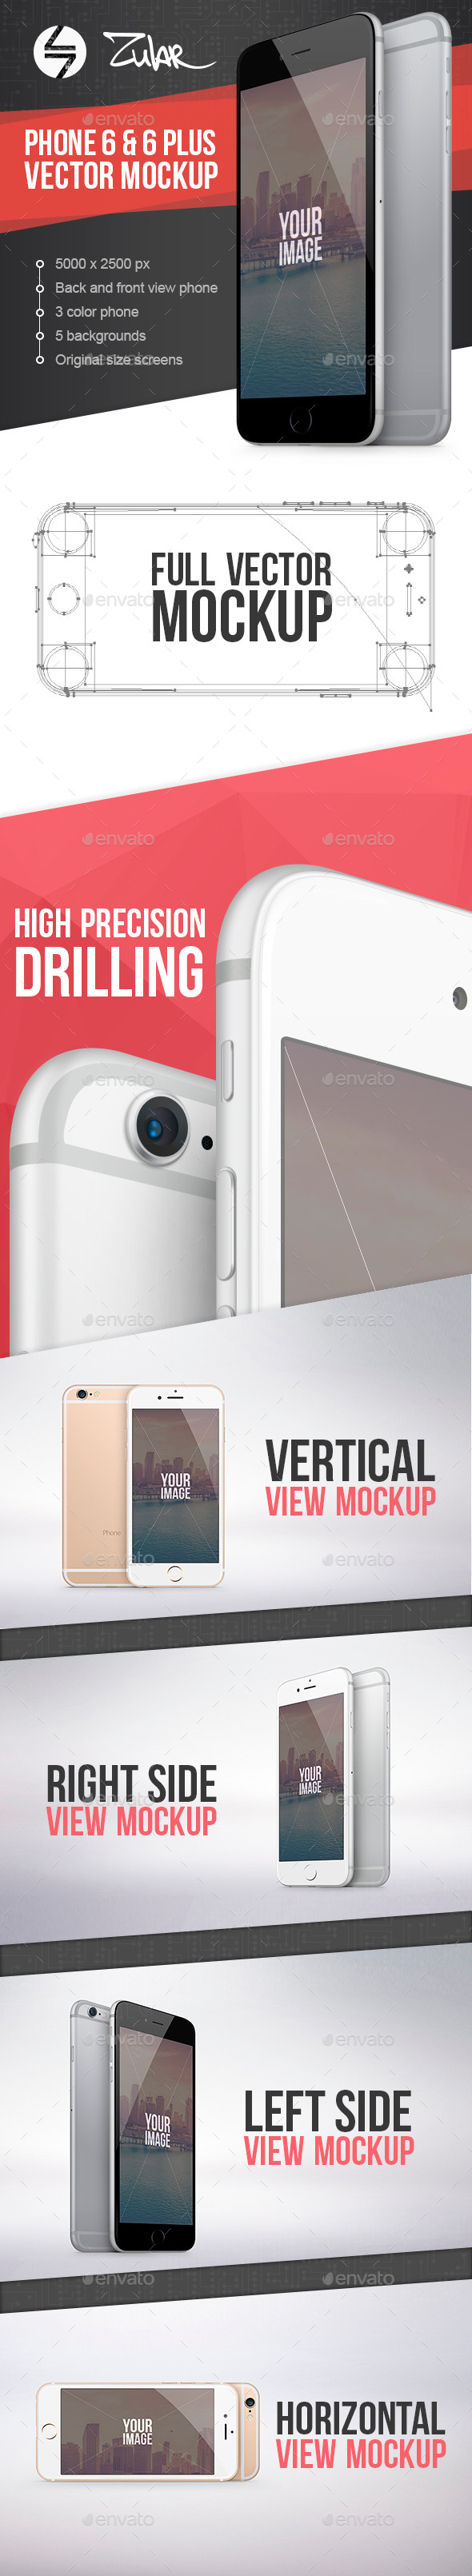 Phone 6 & 6 Plus Vector Mockup - Mobile Displays